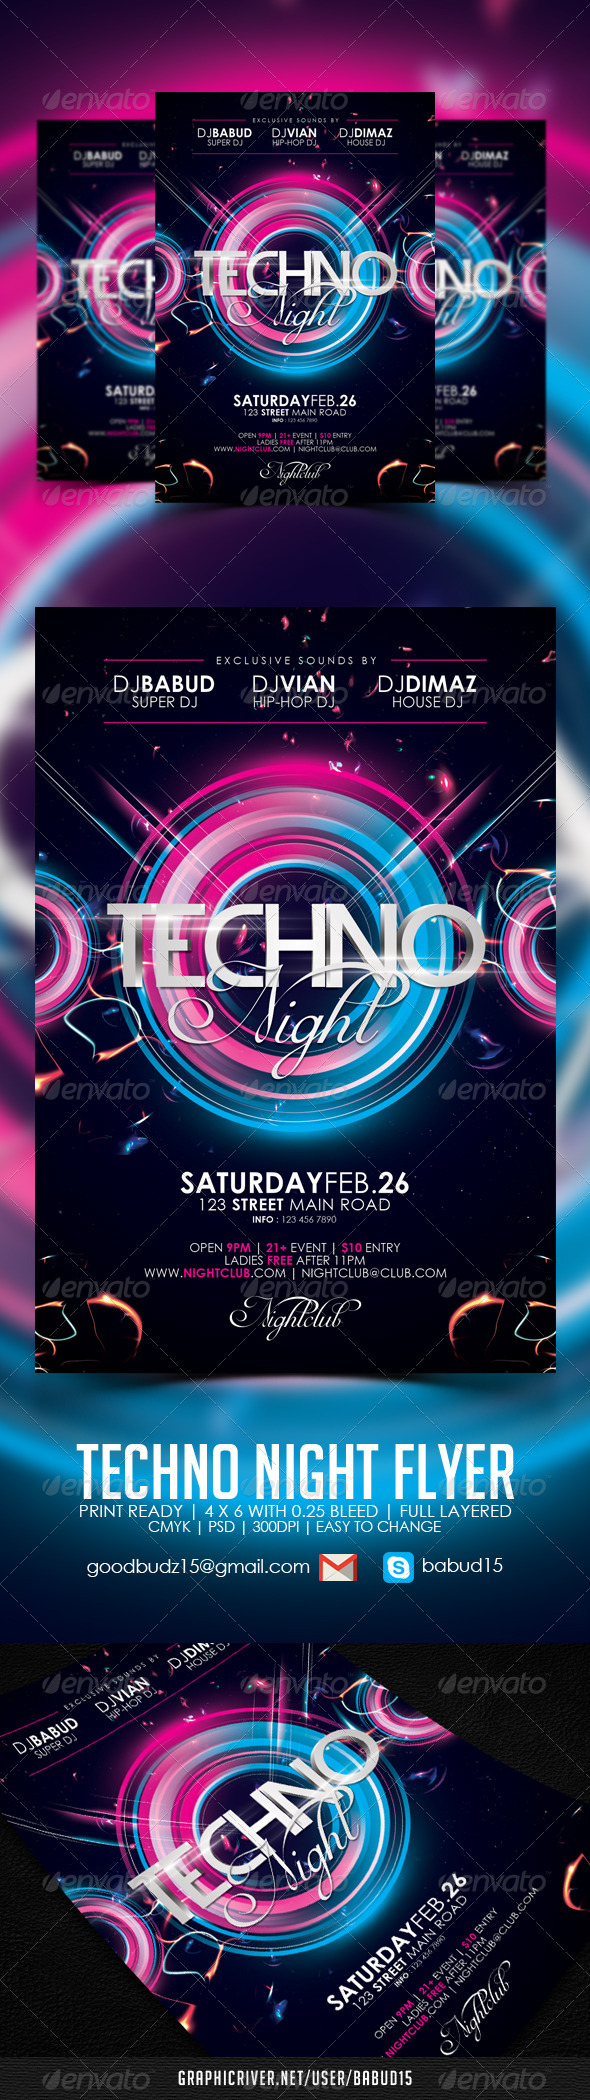 Techno Night Flyer Template - Events Flyers